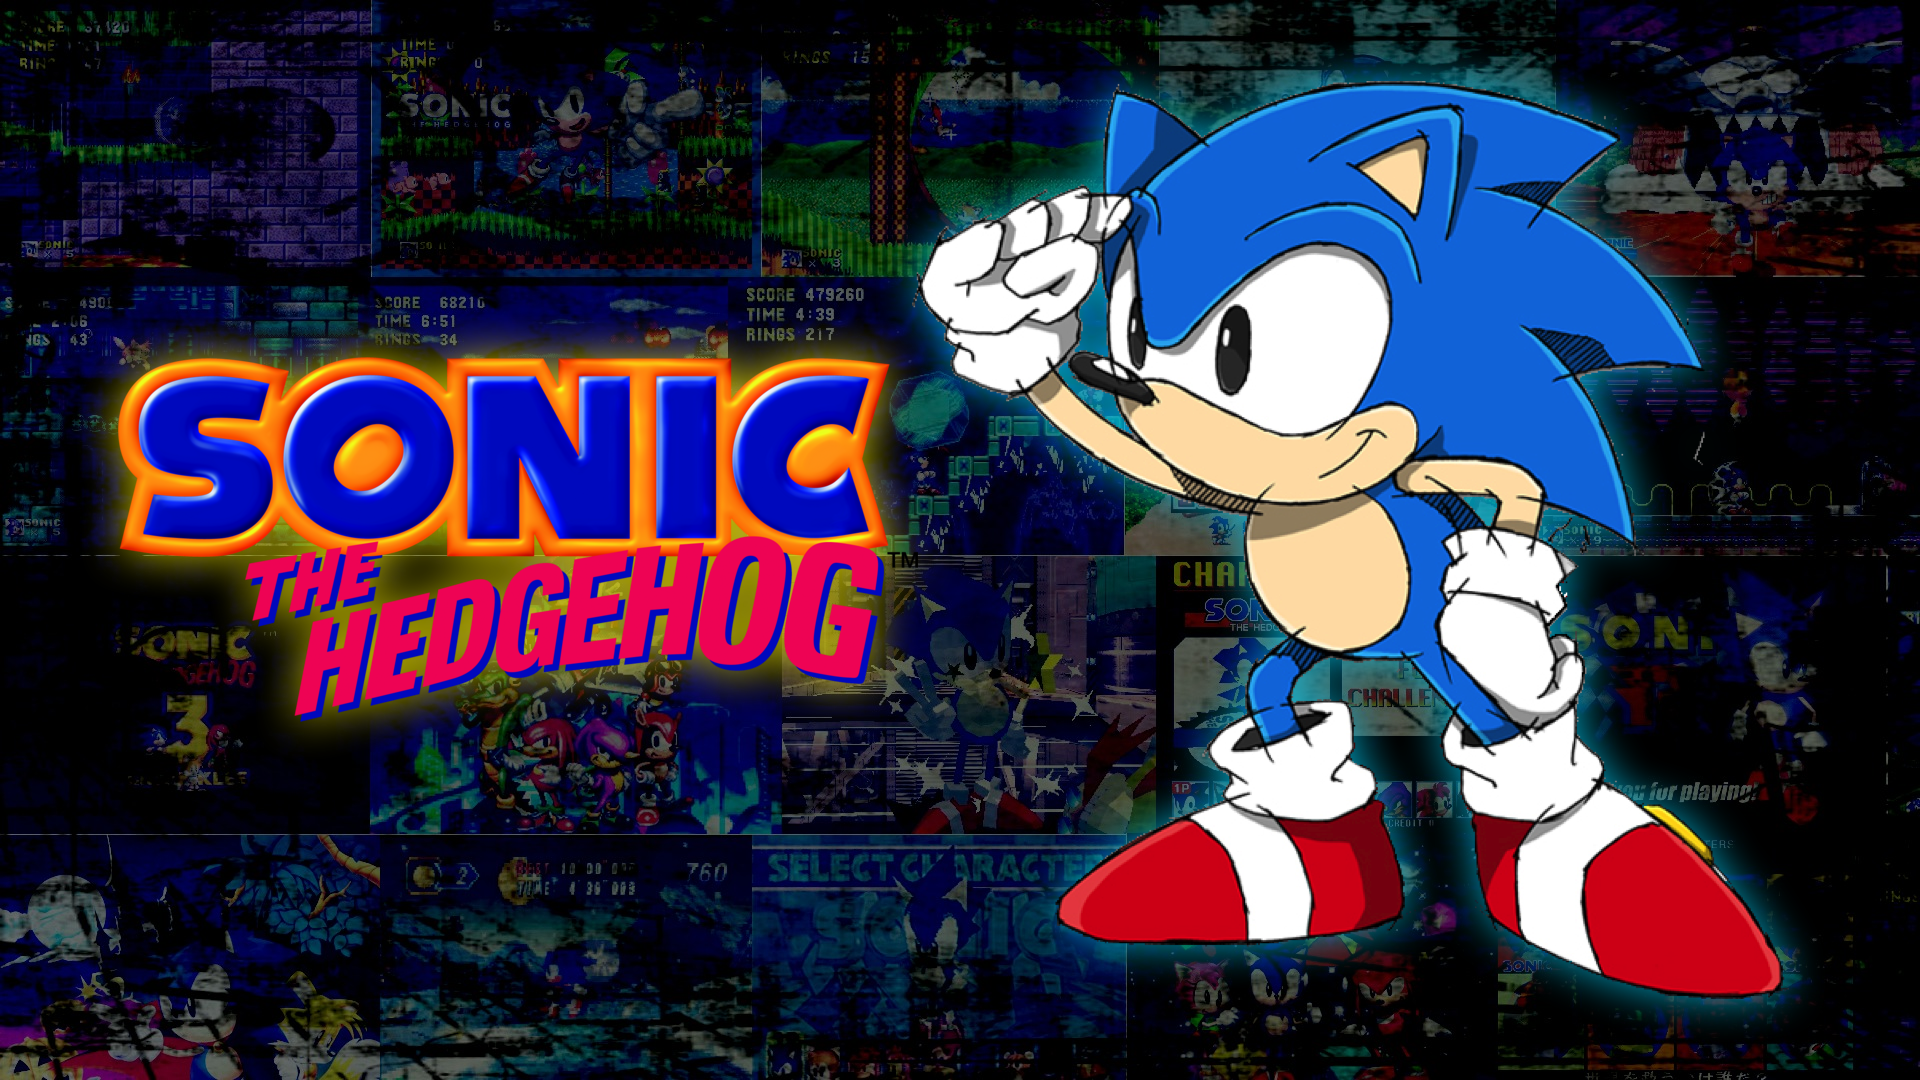 Classic Sonic Wallpaper Backgrounds Download